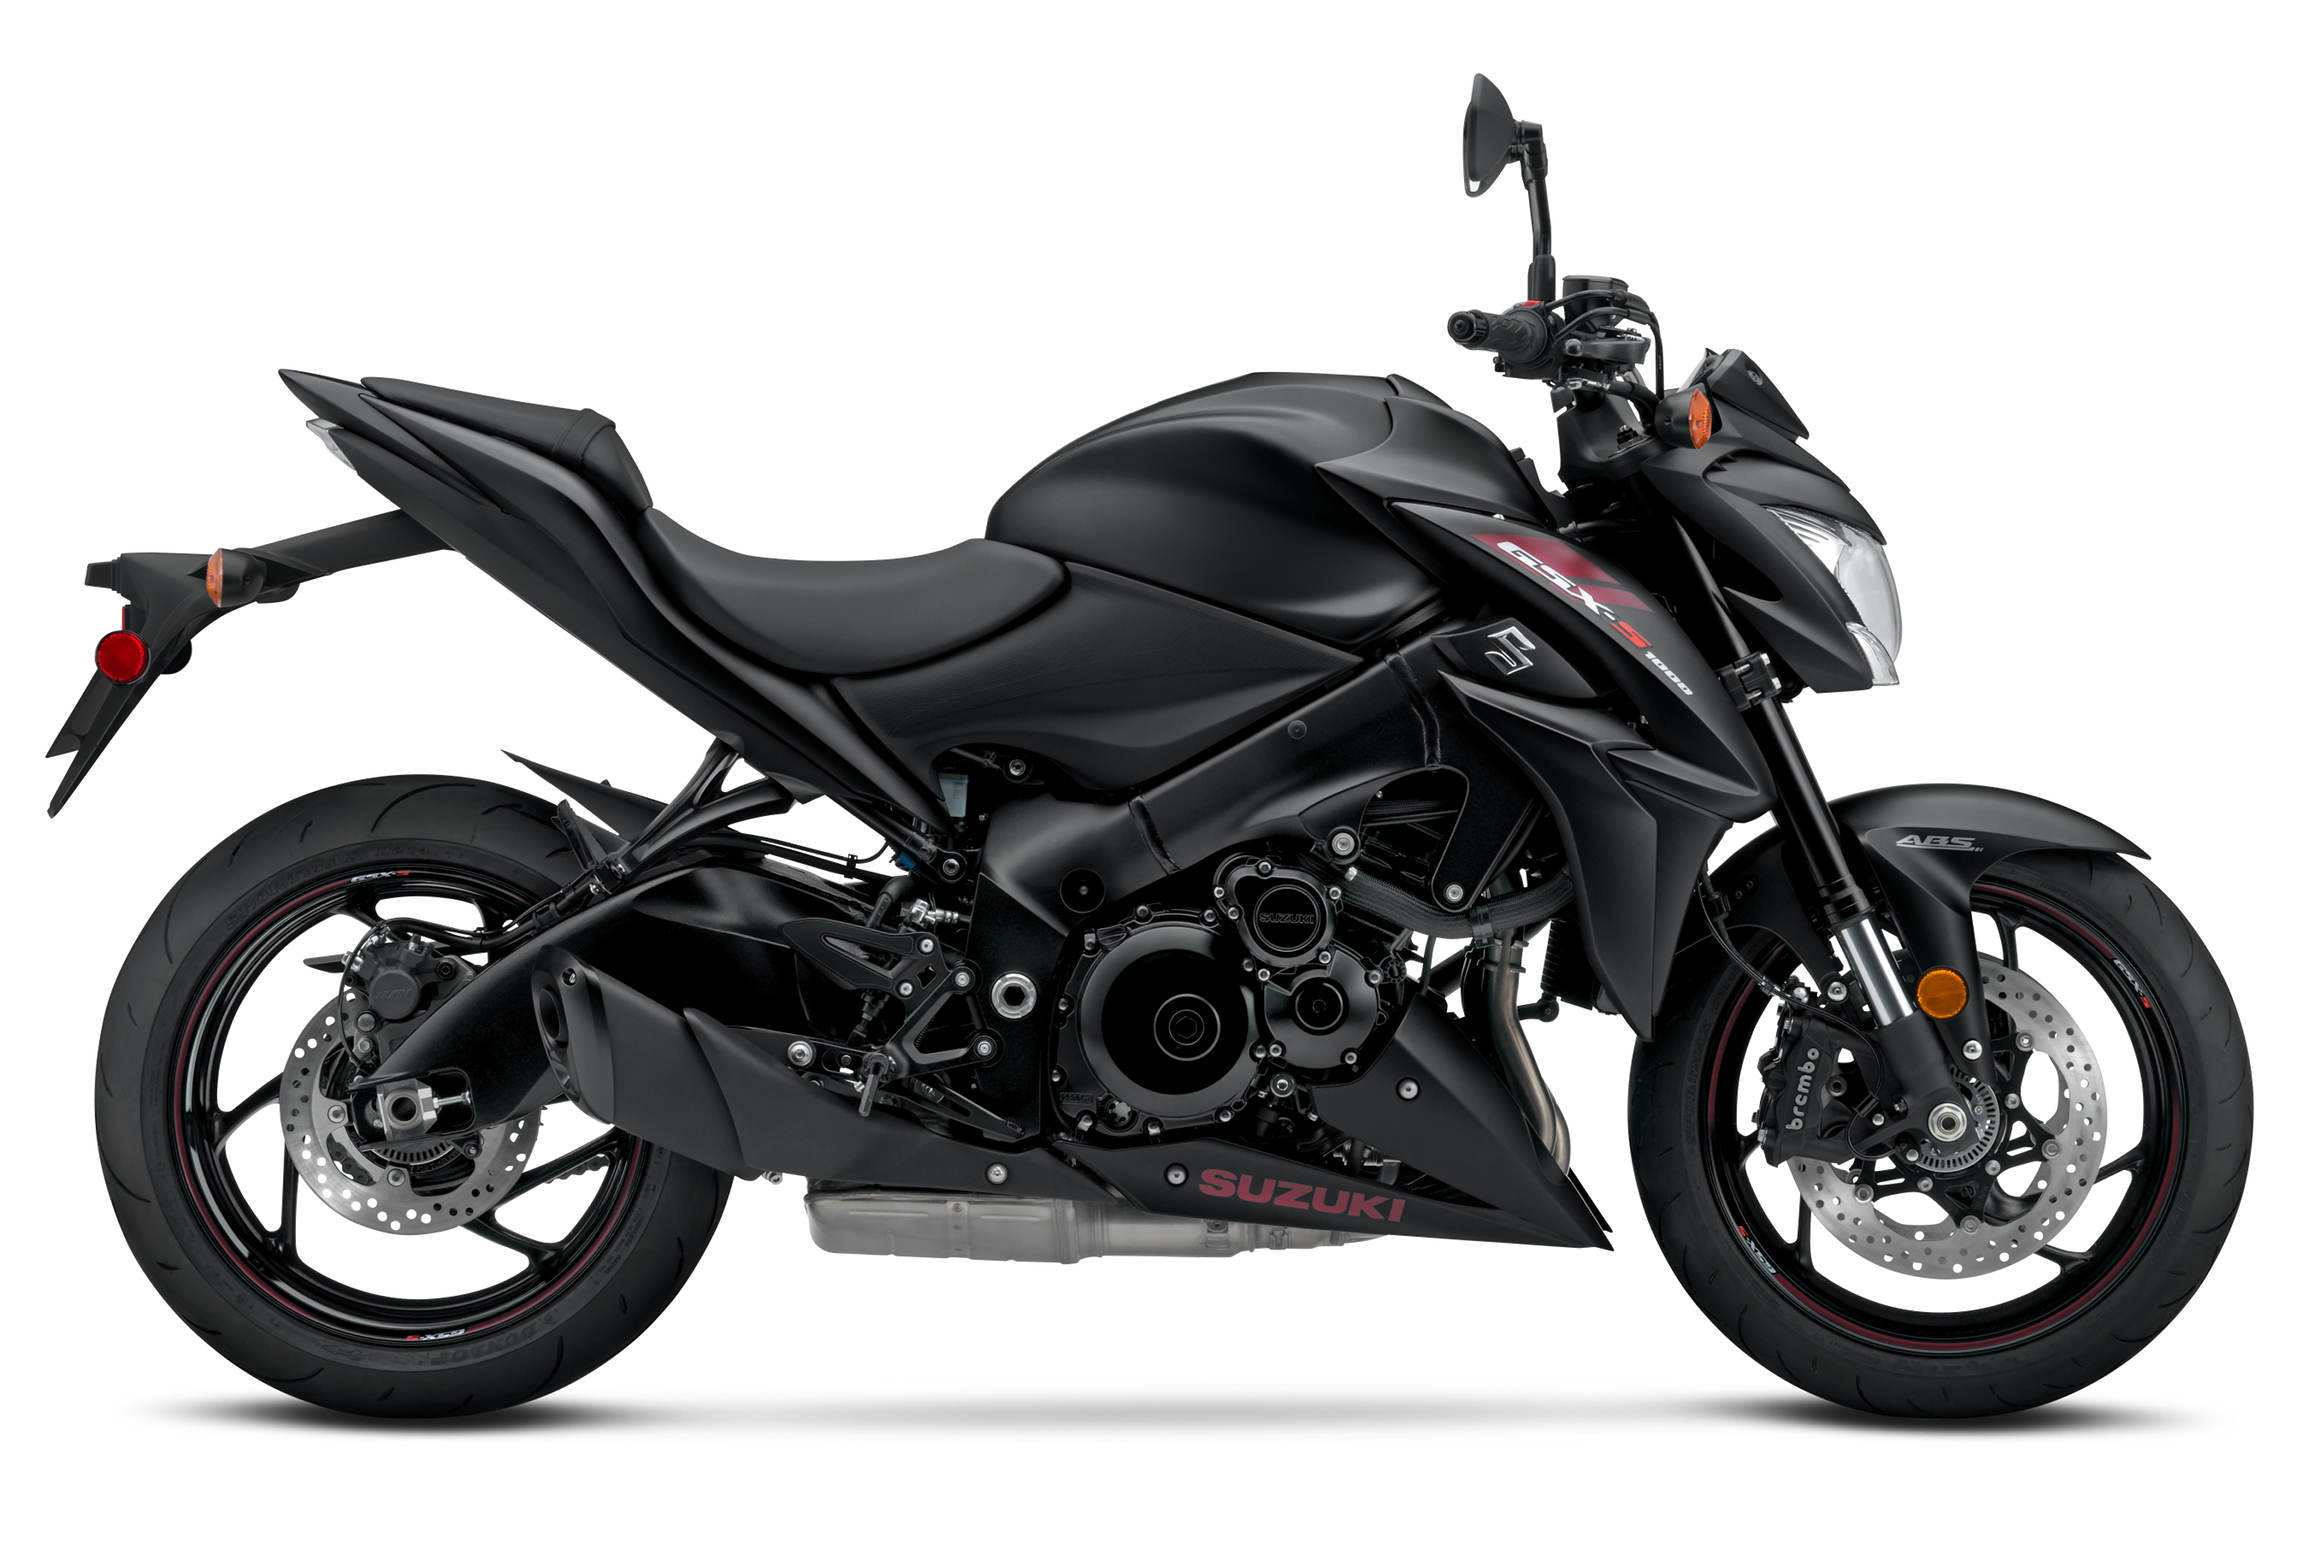 2018 suzuki gsx s1000 family updated with more power slipper clutch and blacked out s1000z. Black Bedroom Furniture Sets. Home Design Ideas